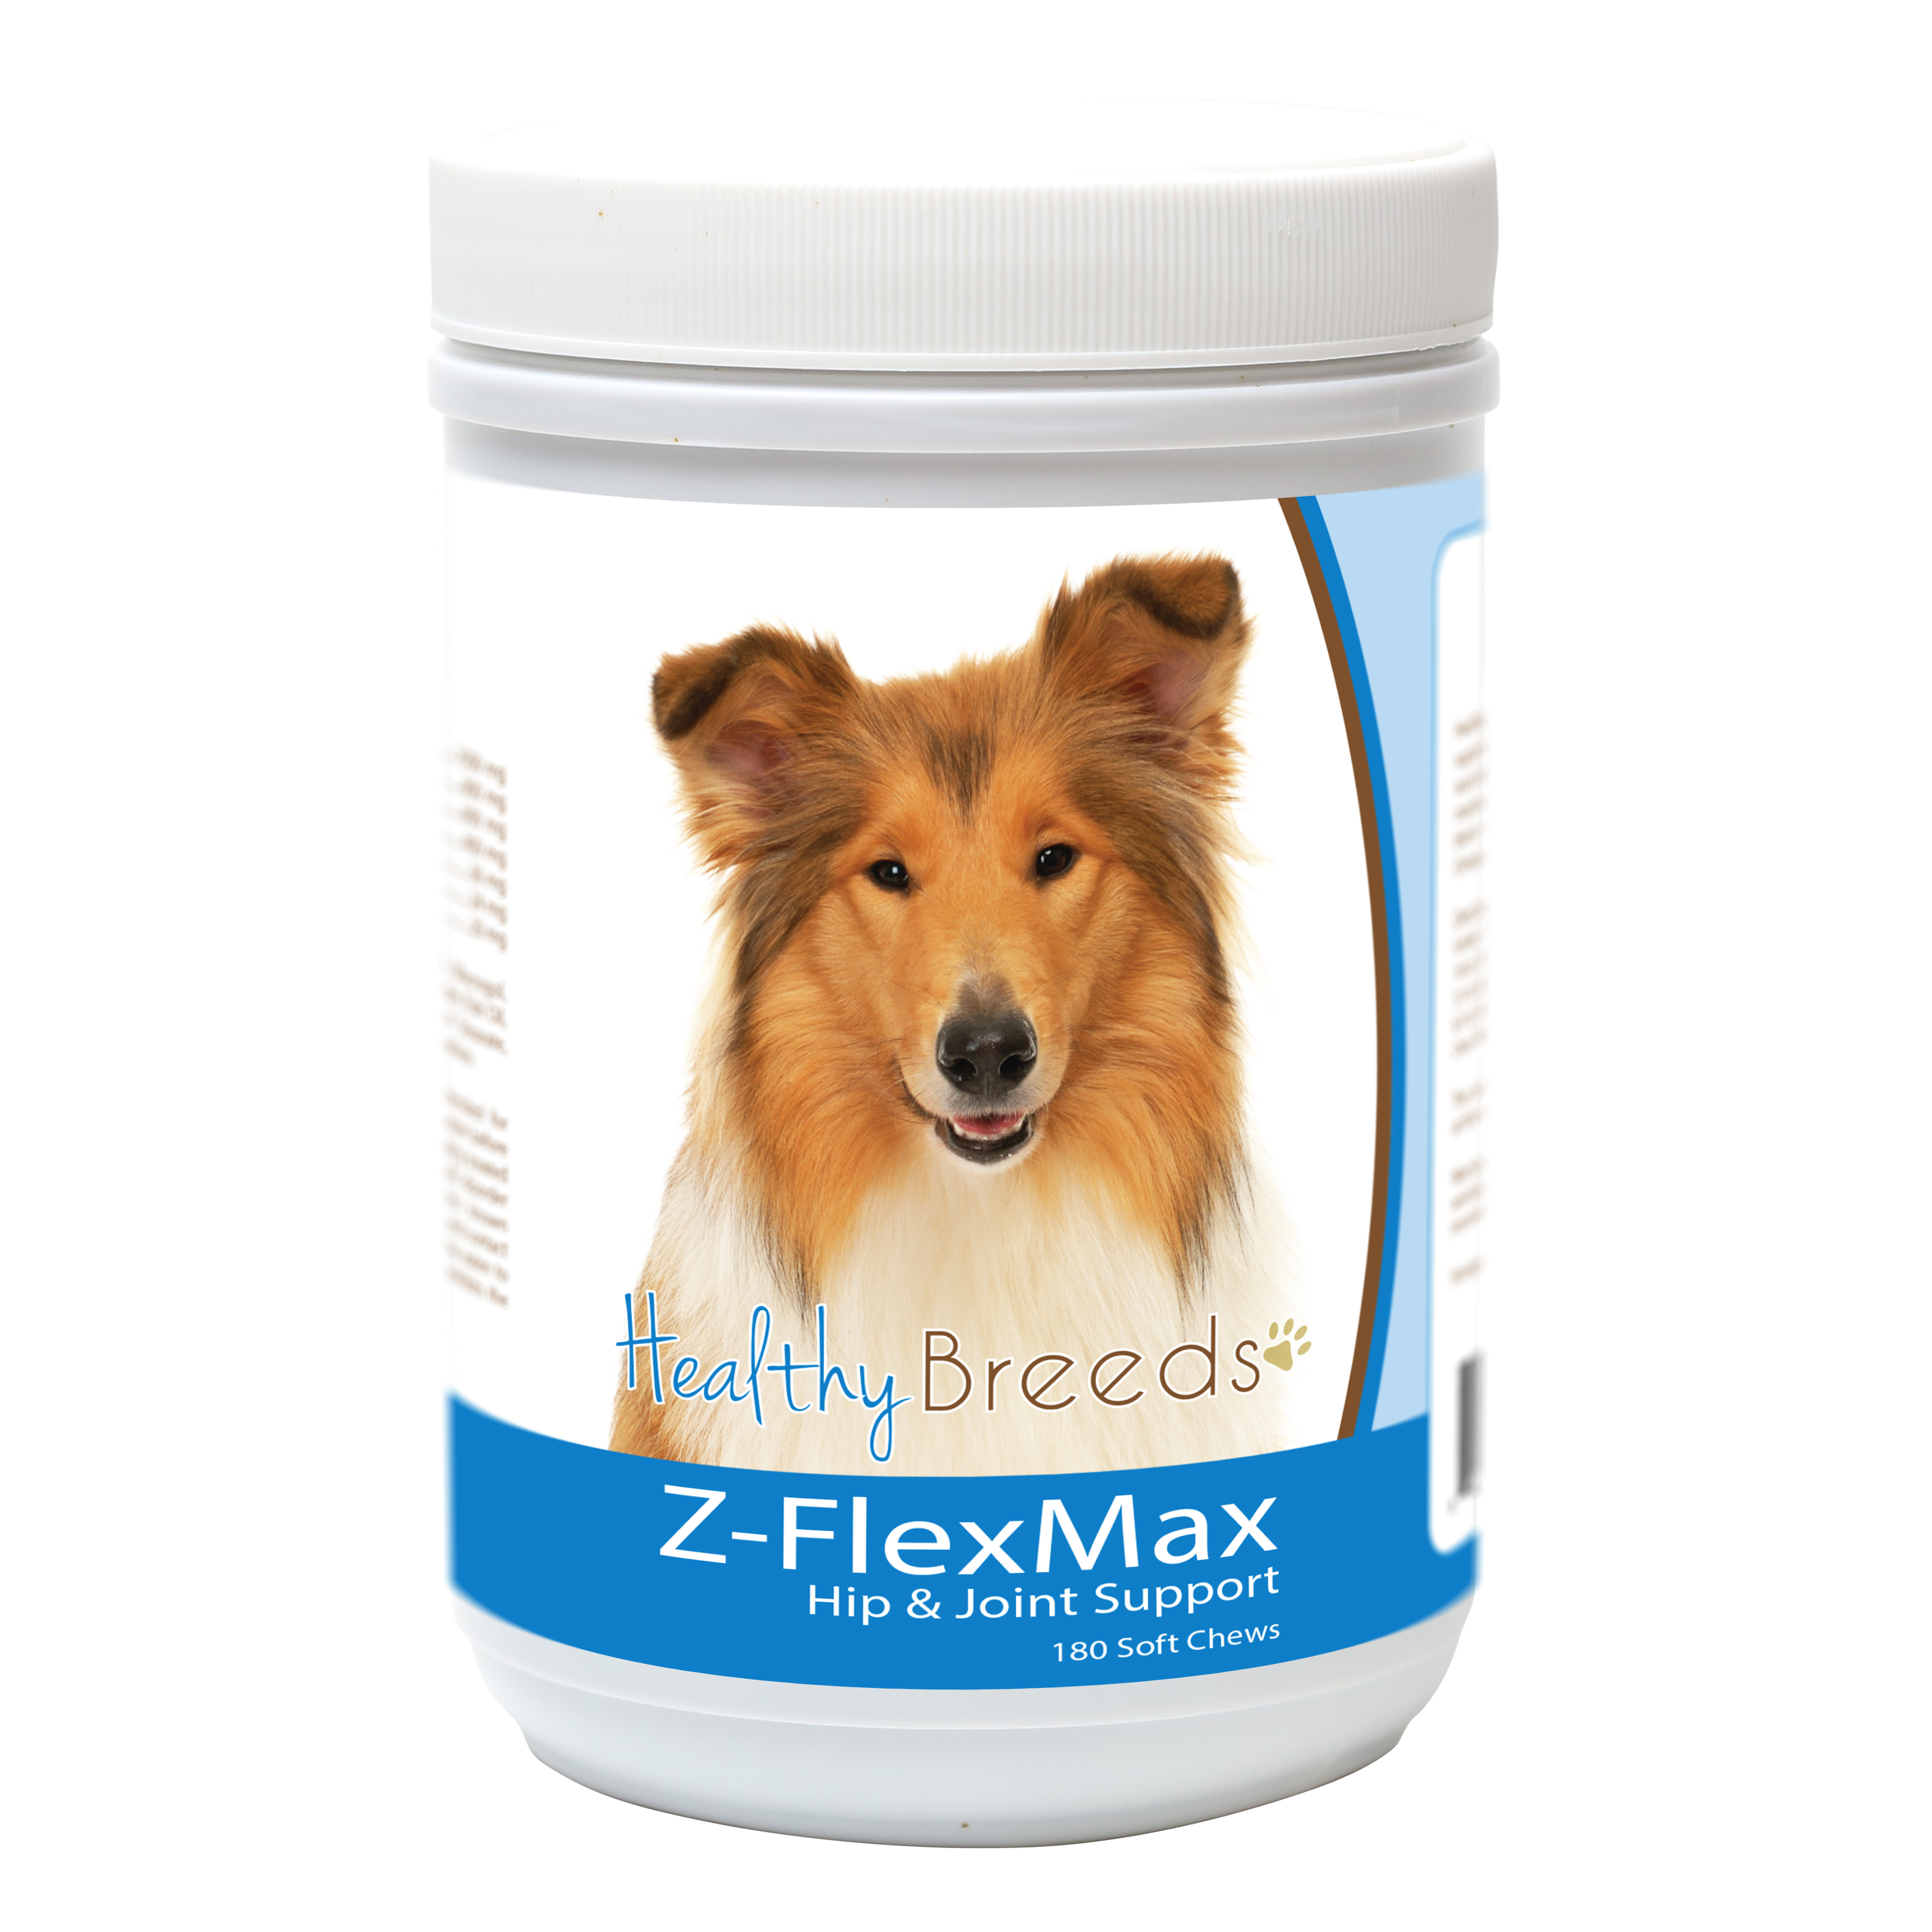 Healthy Breeds Collie Z-Flex Max Dog Hip and Joint Support 180 Count